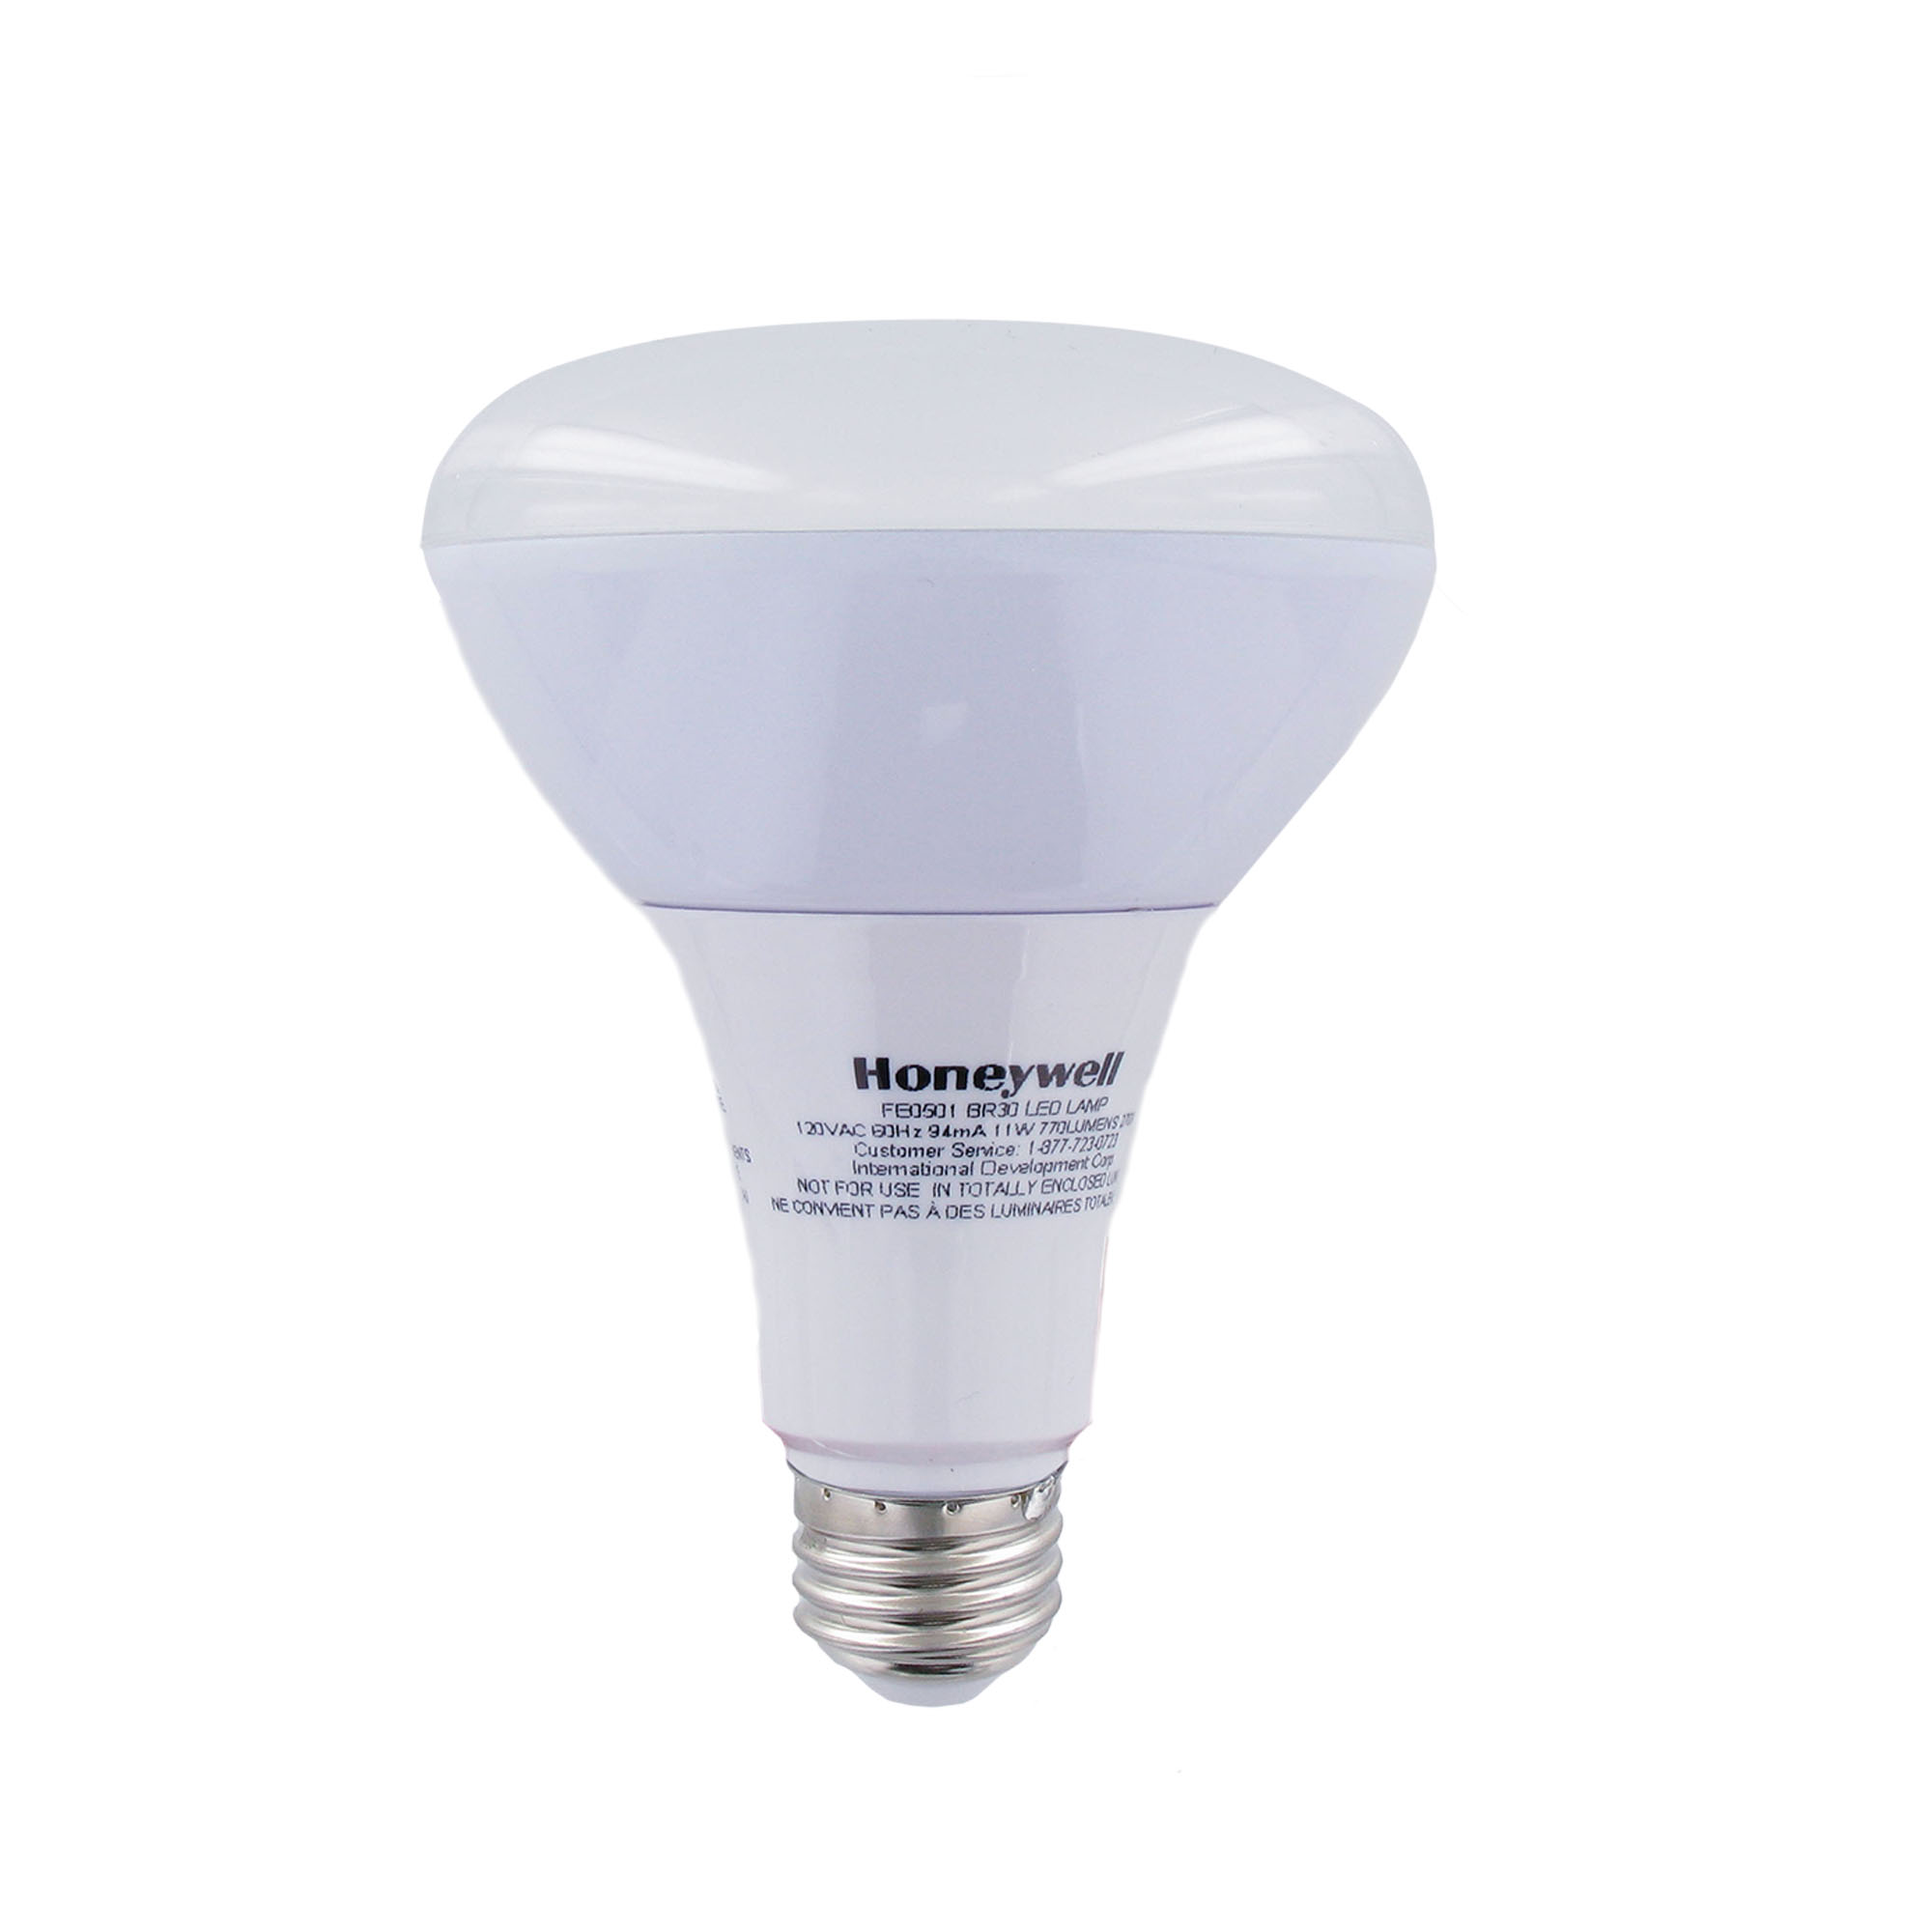 Ampoule Led Honeywell 65w Equivalent Br30 Dimmable Led Light Bulb 2 Pack Fe0501